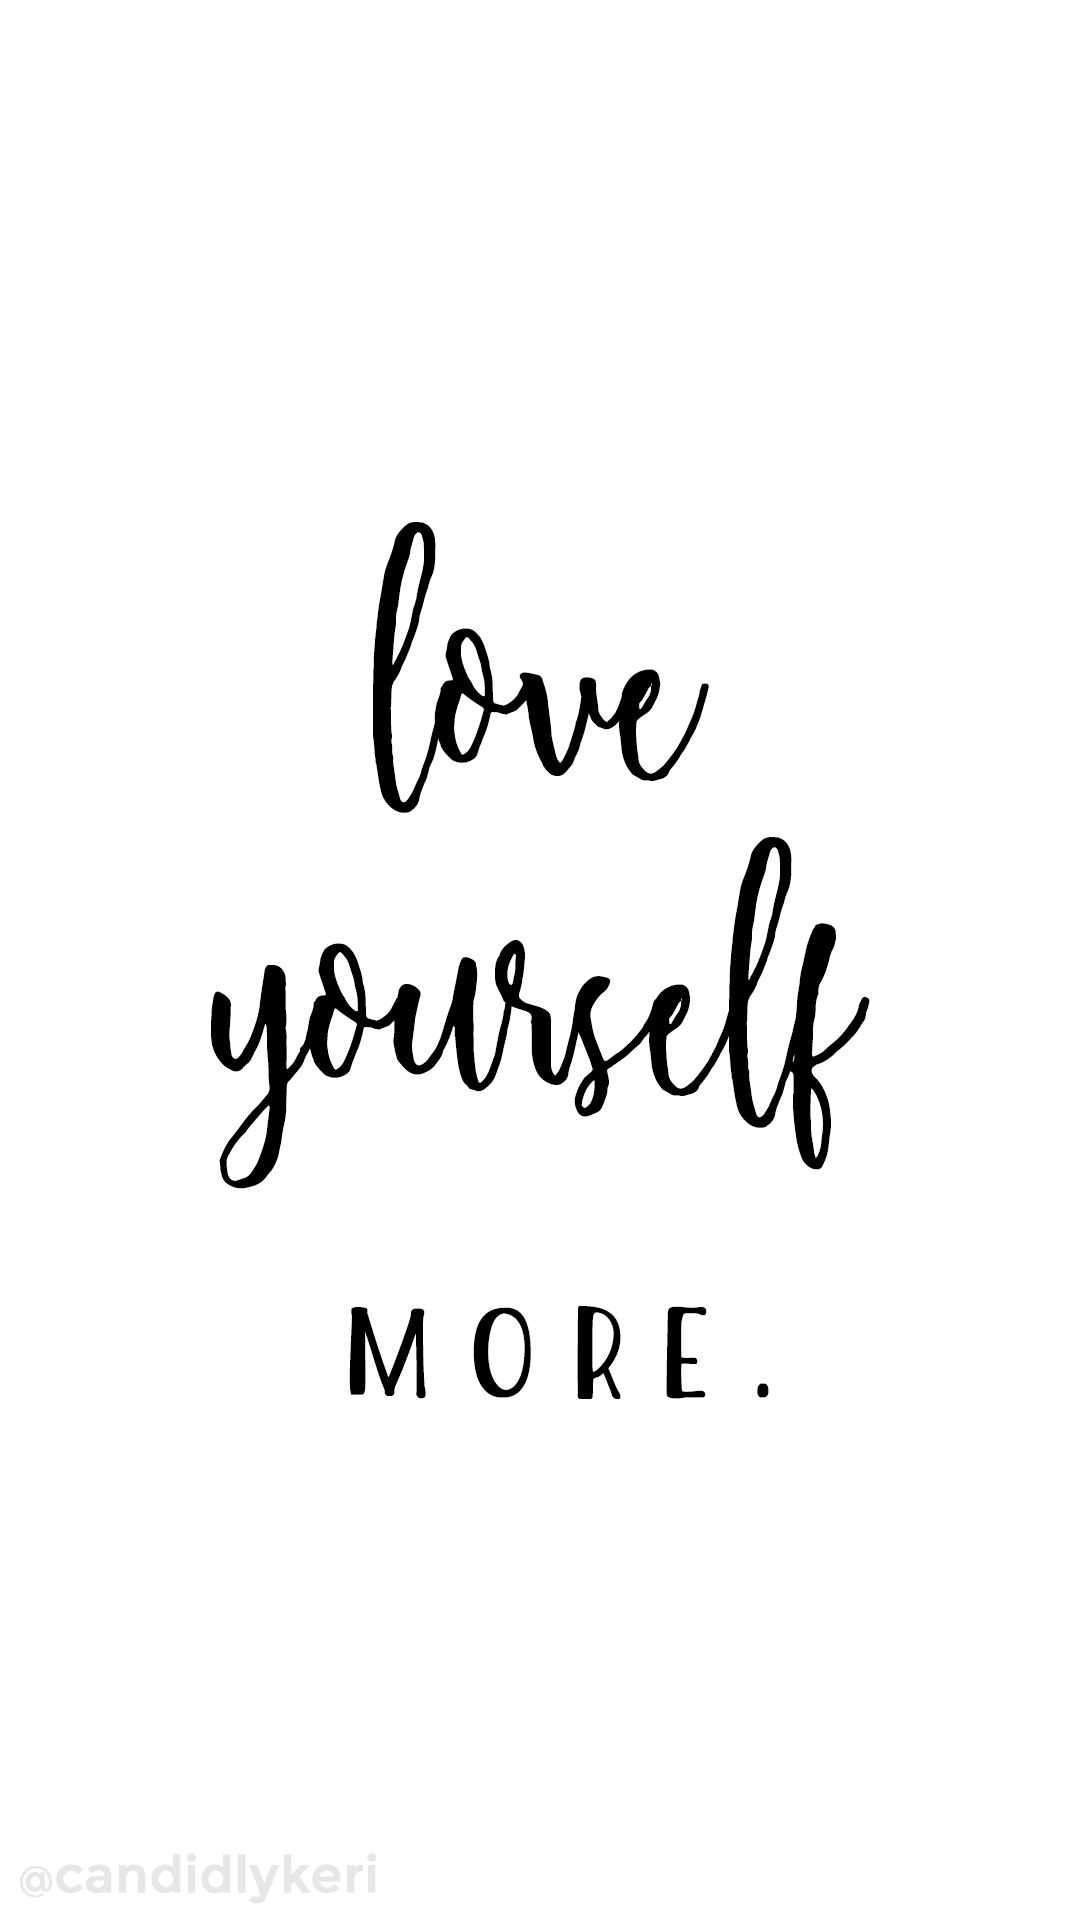 Self Love Iphone Wallpaper : Love Yourself More Quote inspirational self love wallpaper ...